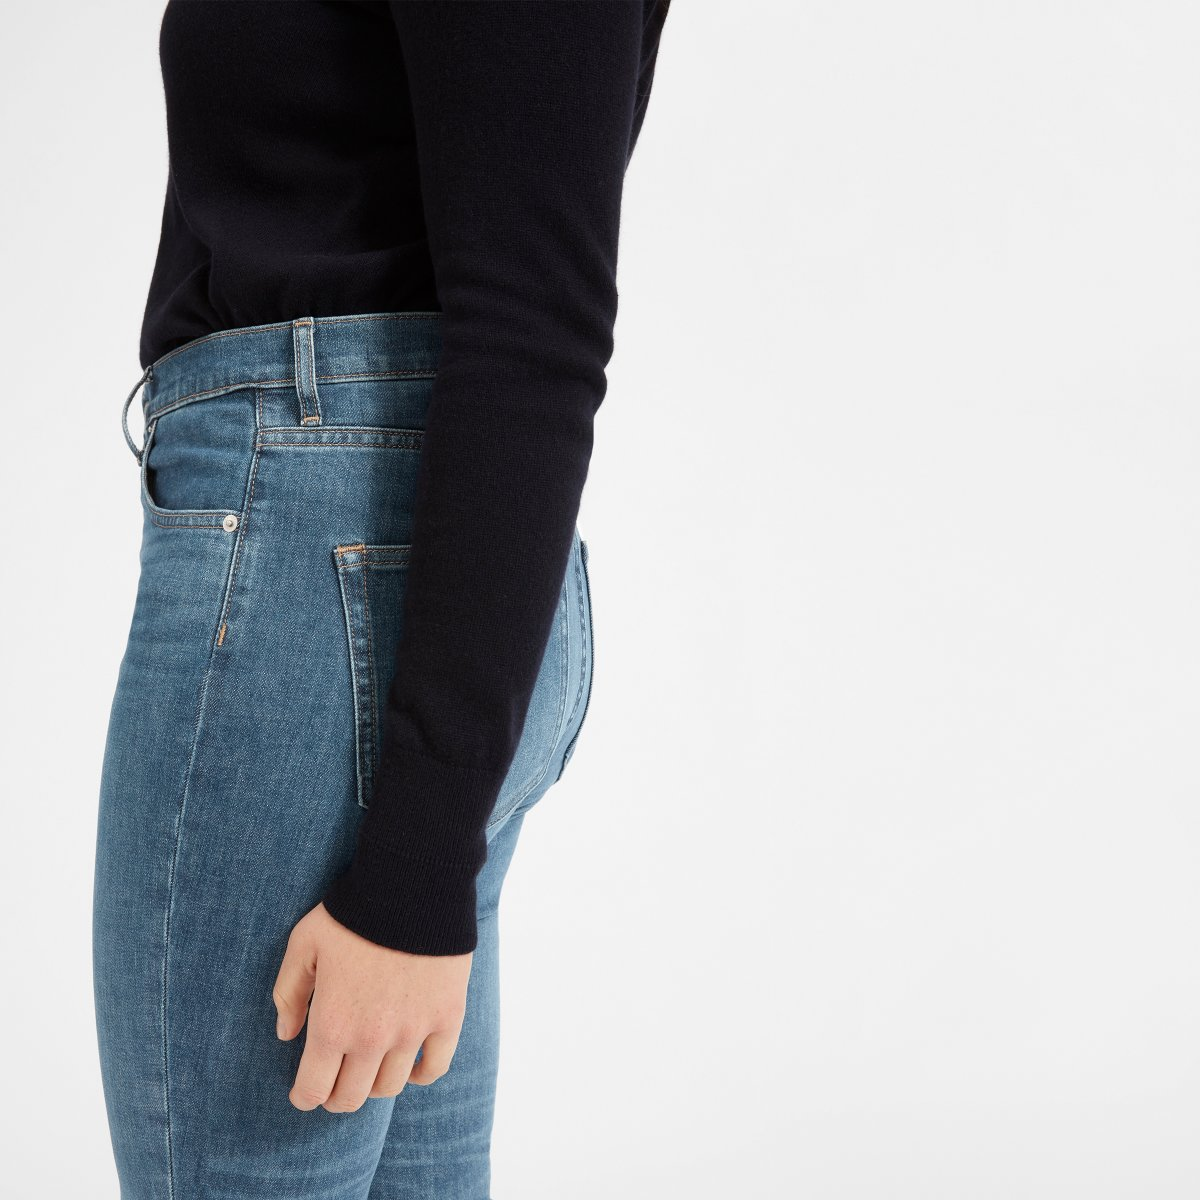 Womens High Rise Skinny Jean Everlane Vintage Skin Rip Off Stretch Soft Jeans See How These Fit On Other Sizes